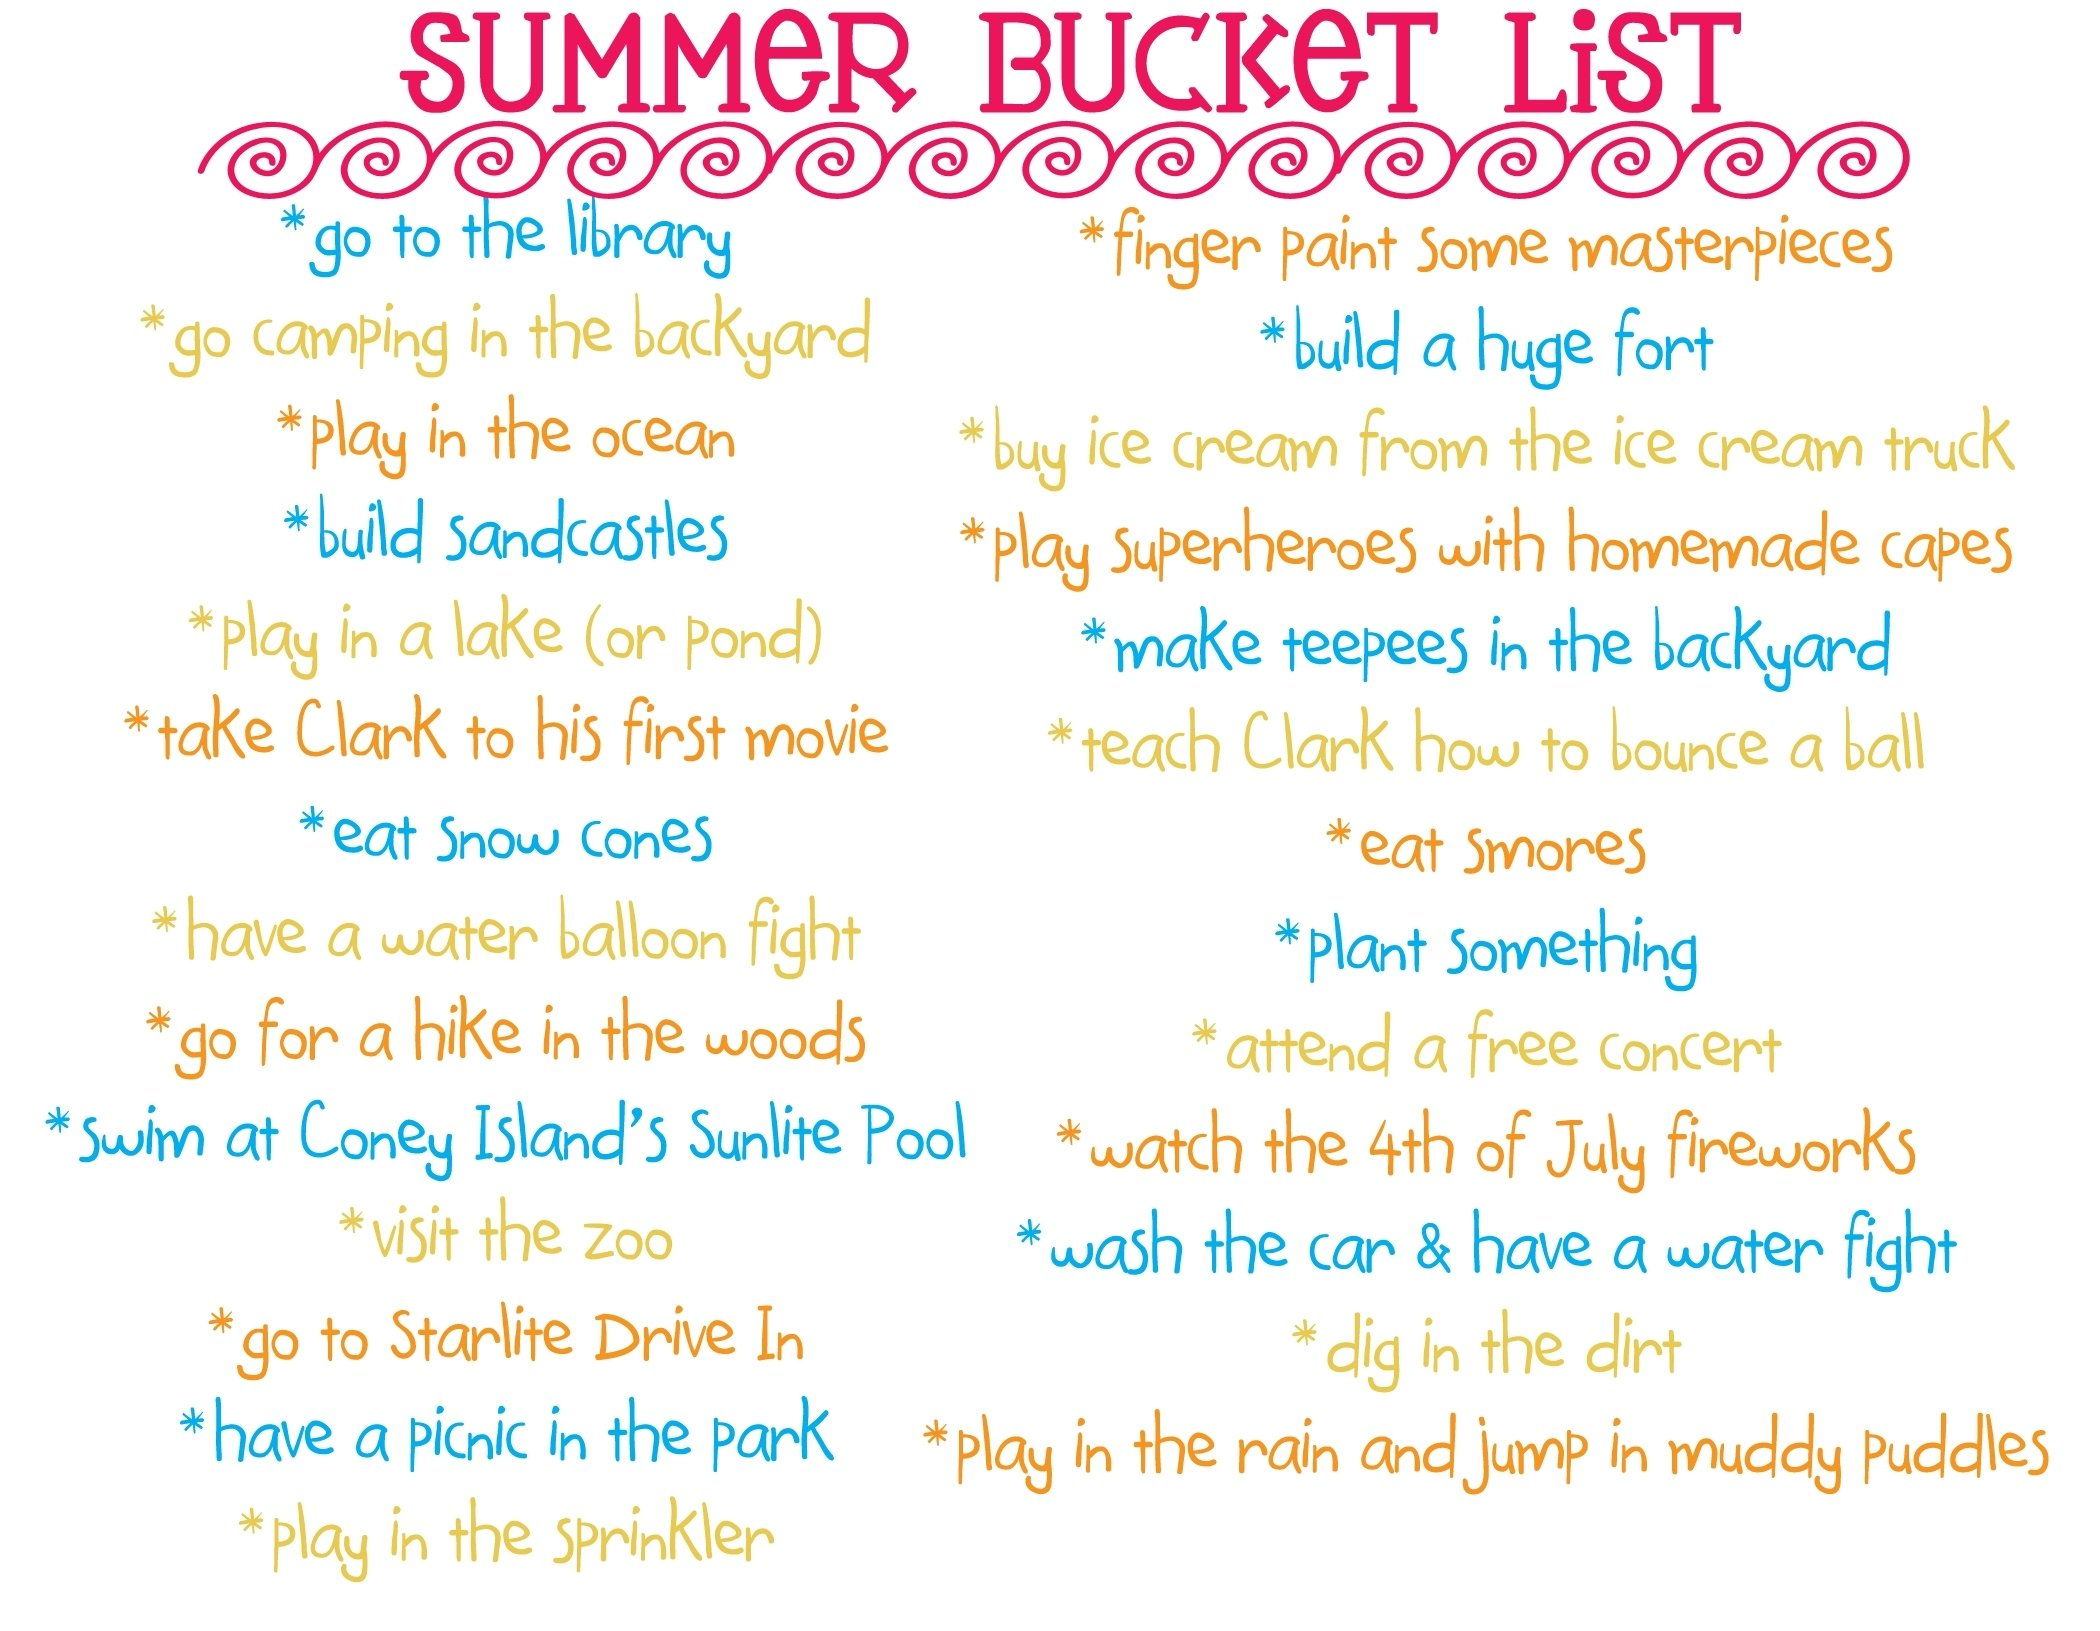 10 Spectacular Funny Bucket List Ideas For Teenagers summer bucket list 2012 two blue pillars